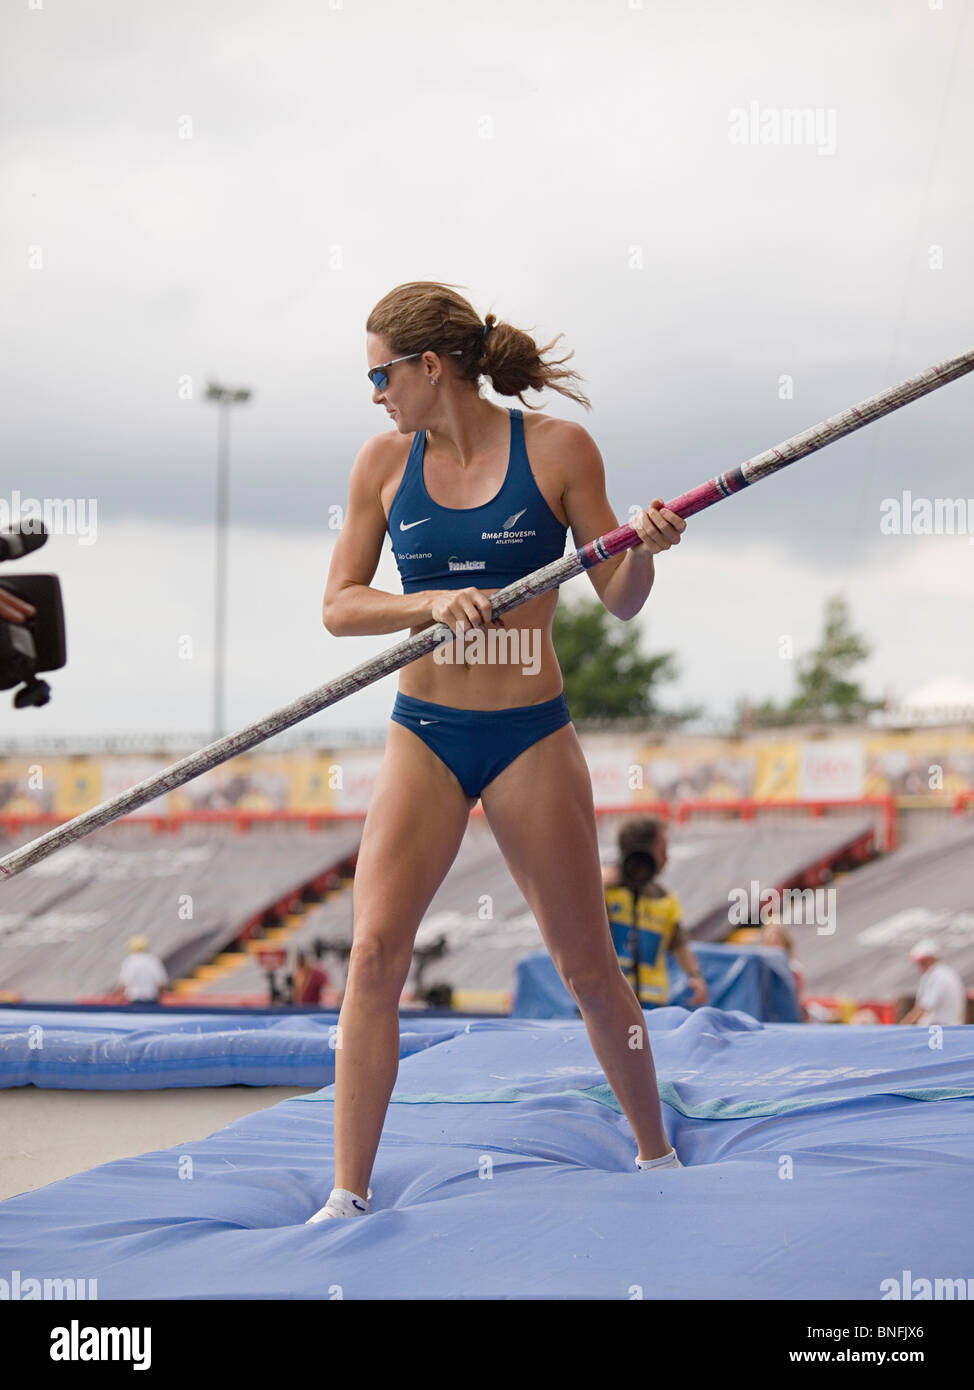 Fabiana Murer on the mattrass after an attempt at Pole Vault during Diamond League Aviva British Grand Prix in Gateshead - Stock Image